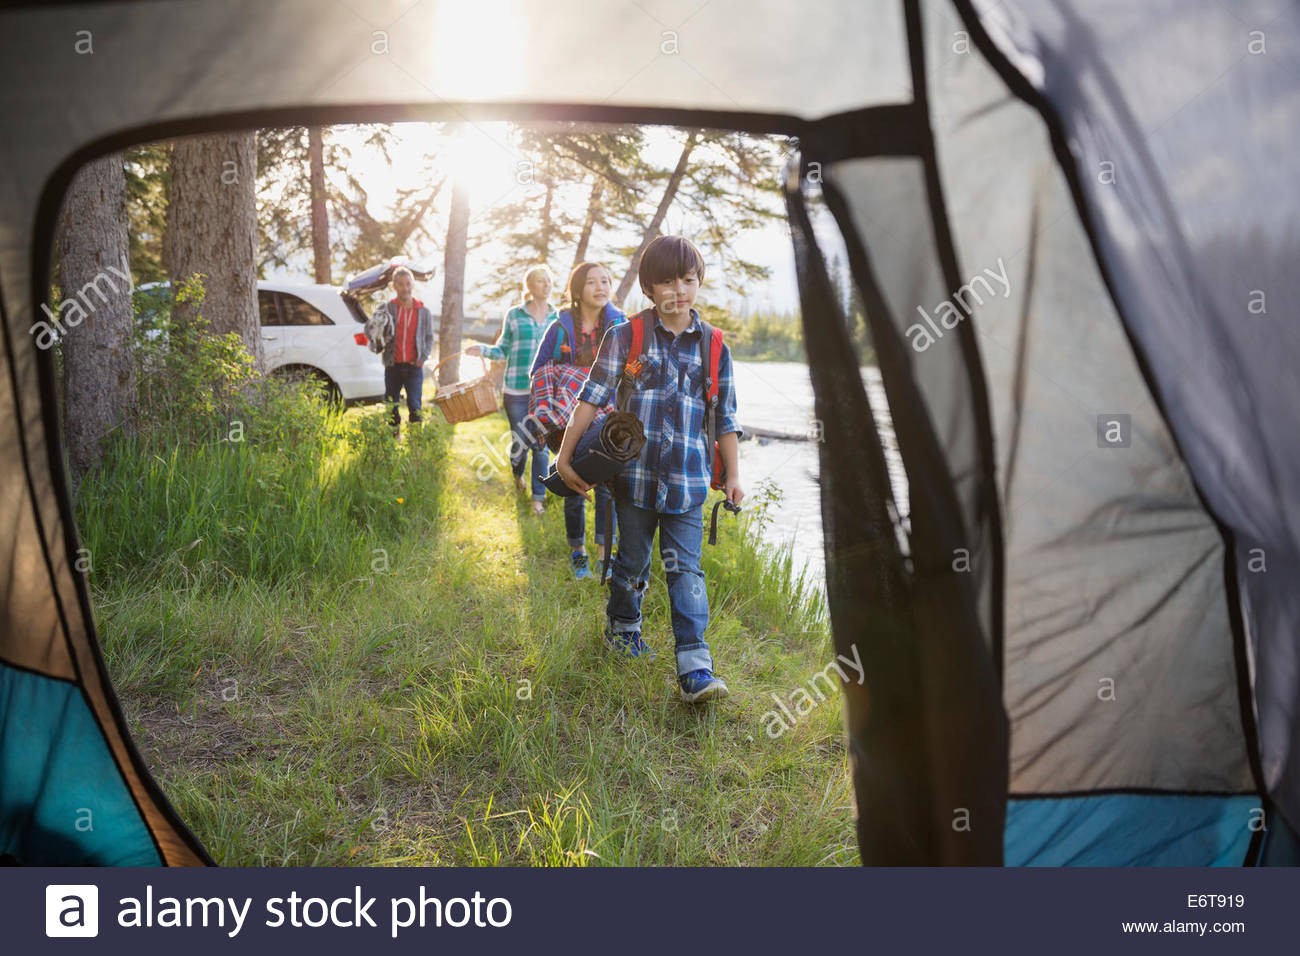 Family carrying gear at campsite - Stock Image